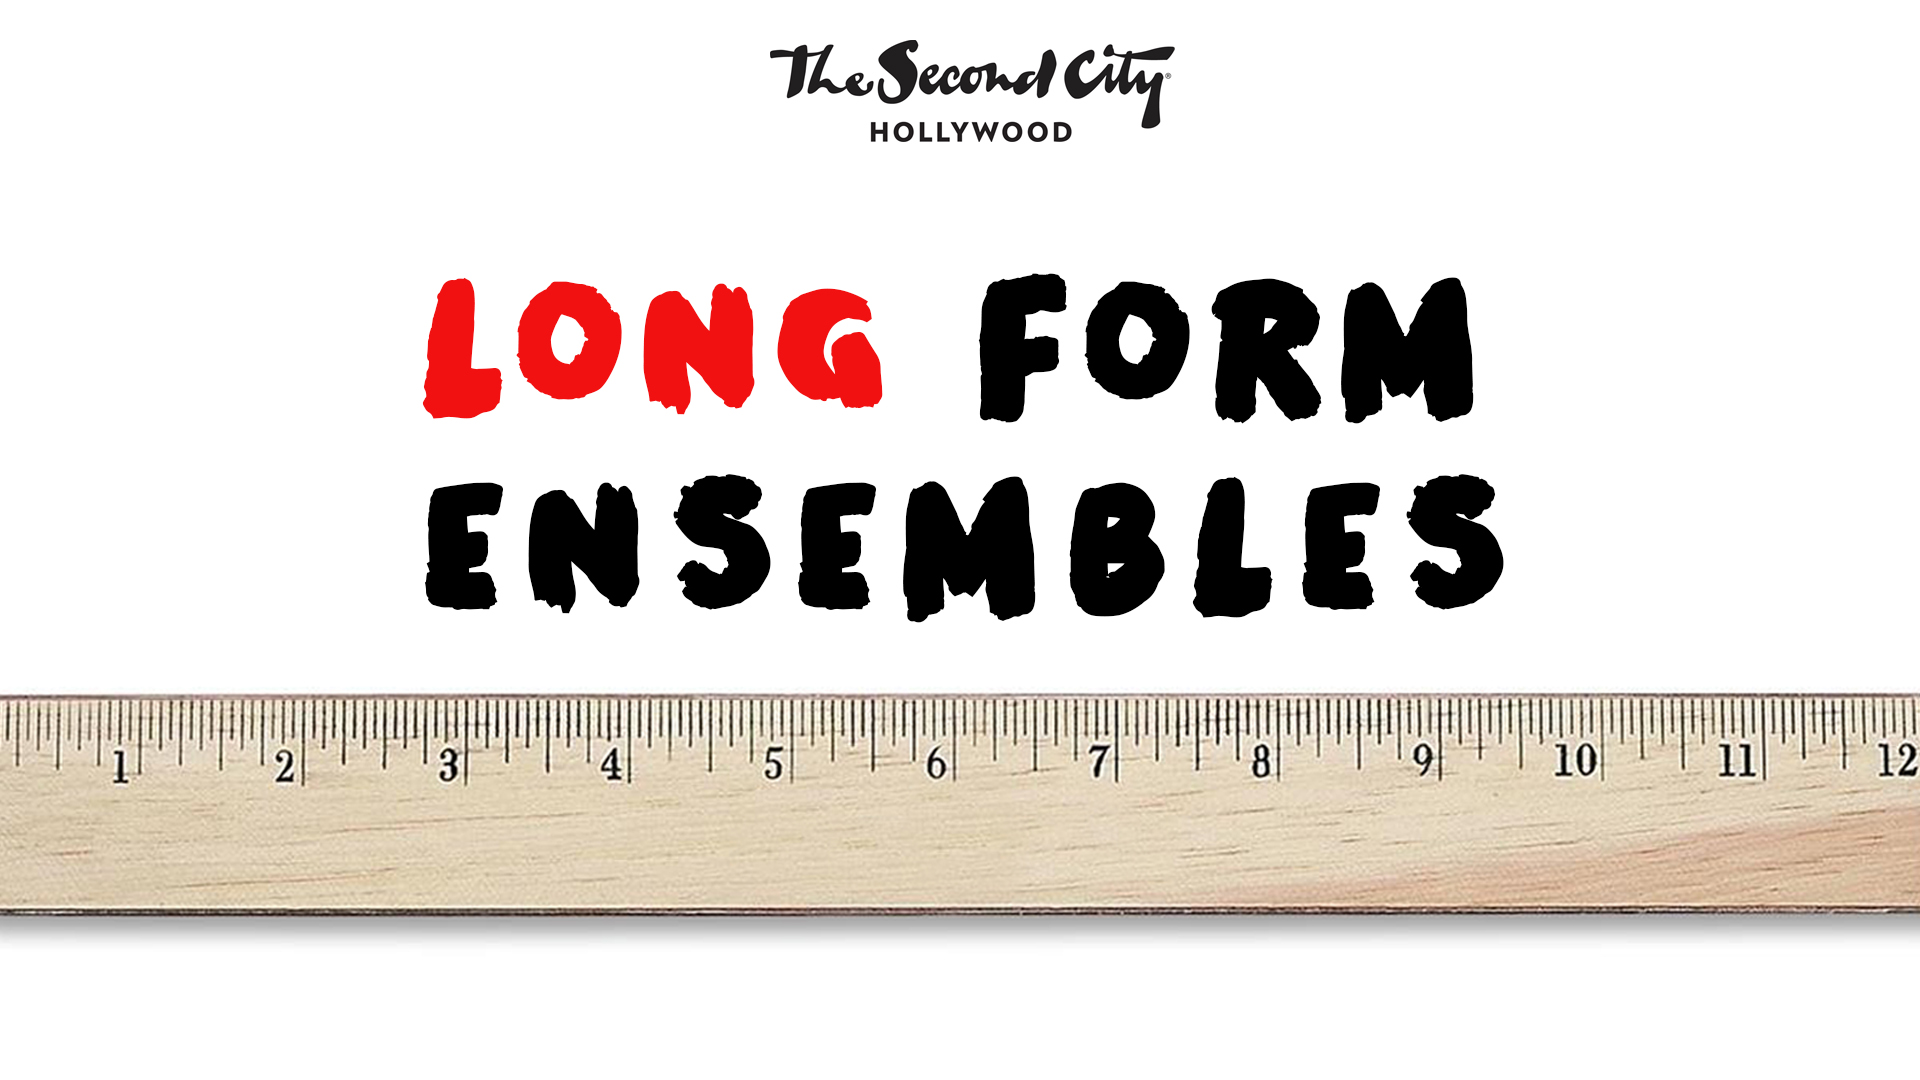 The Second City Hollywood Long-Form Ensembles & Holly's Happy Hour